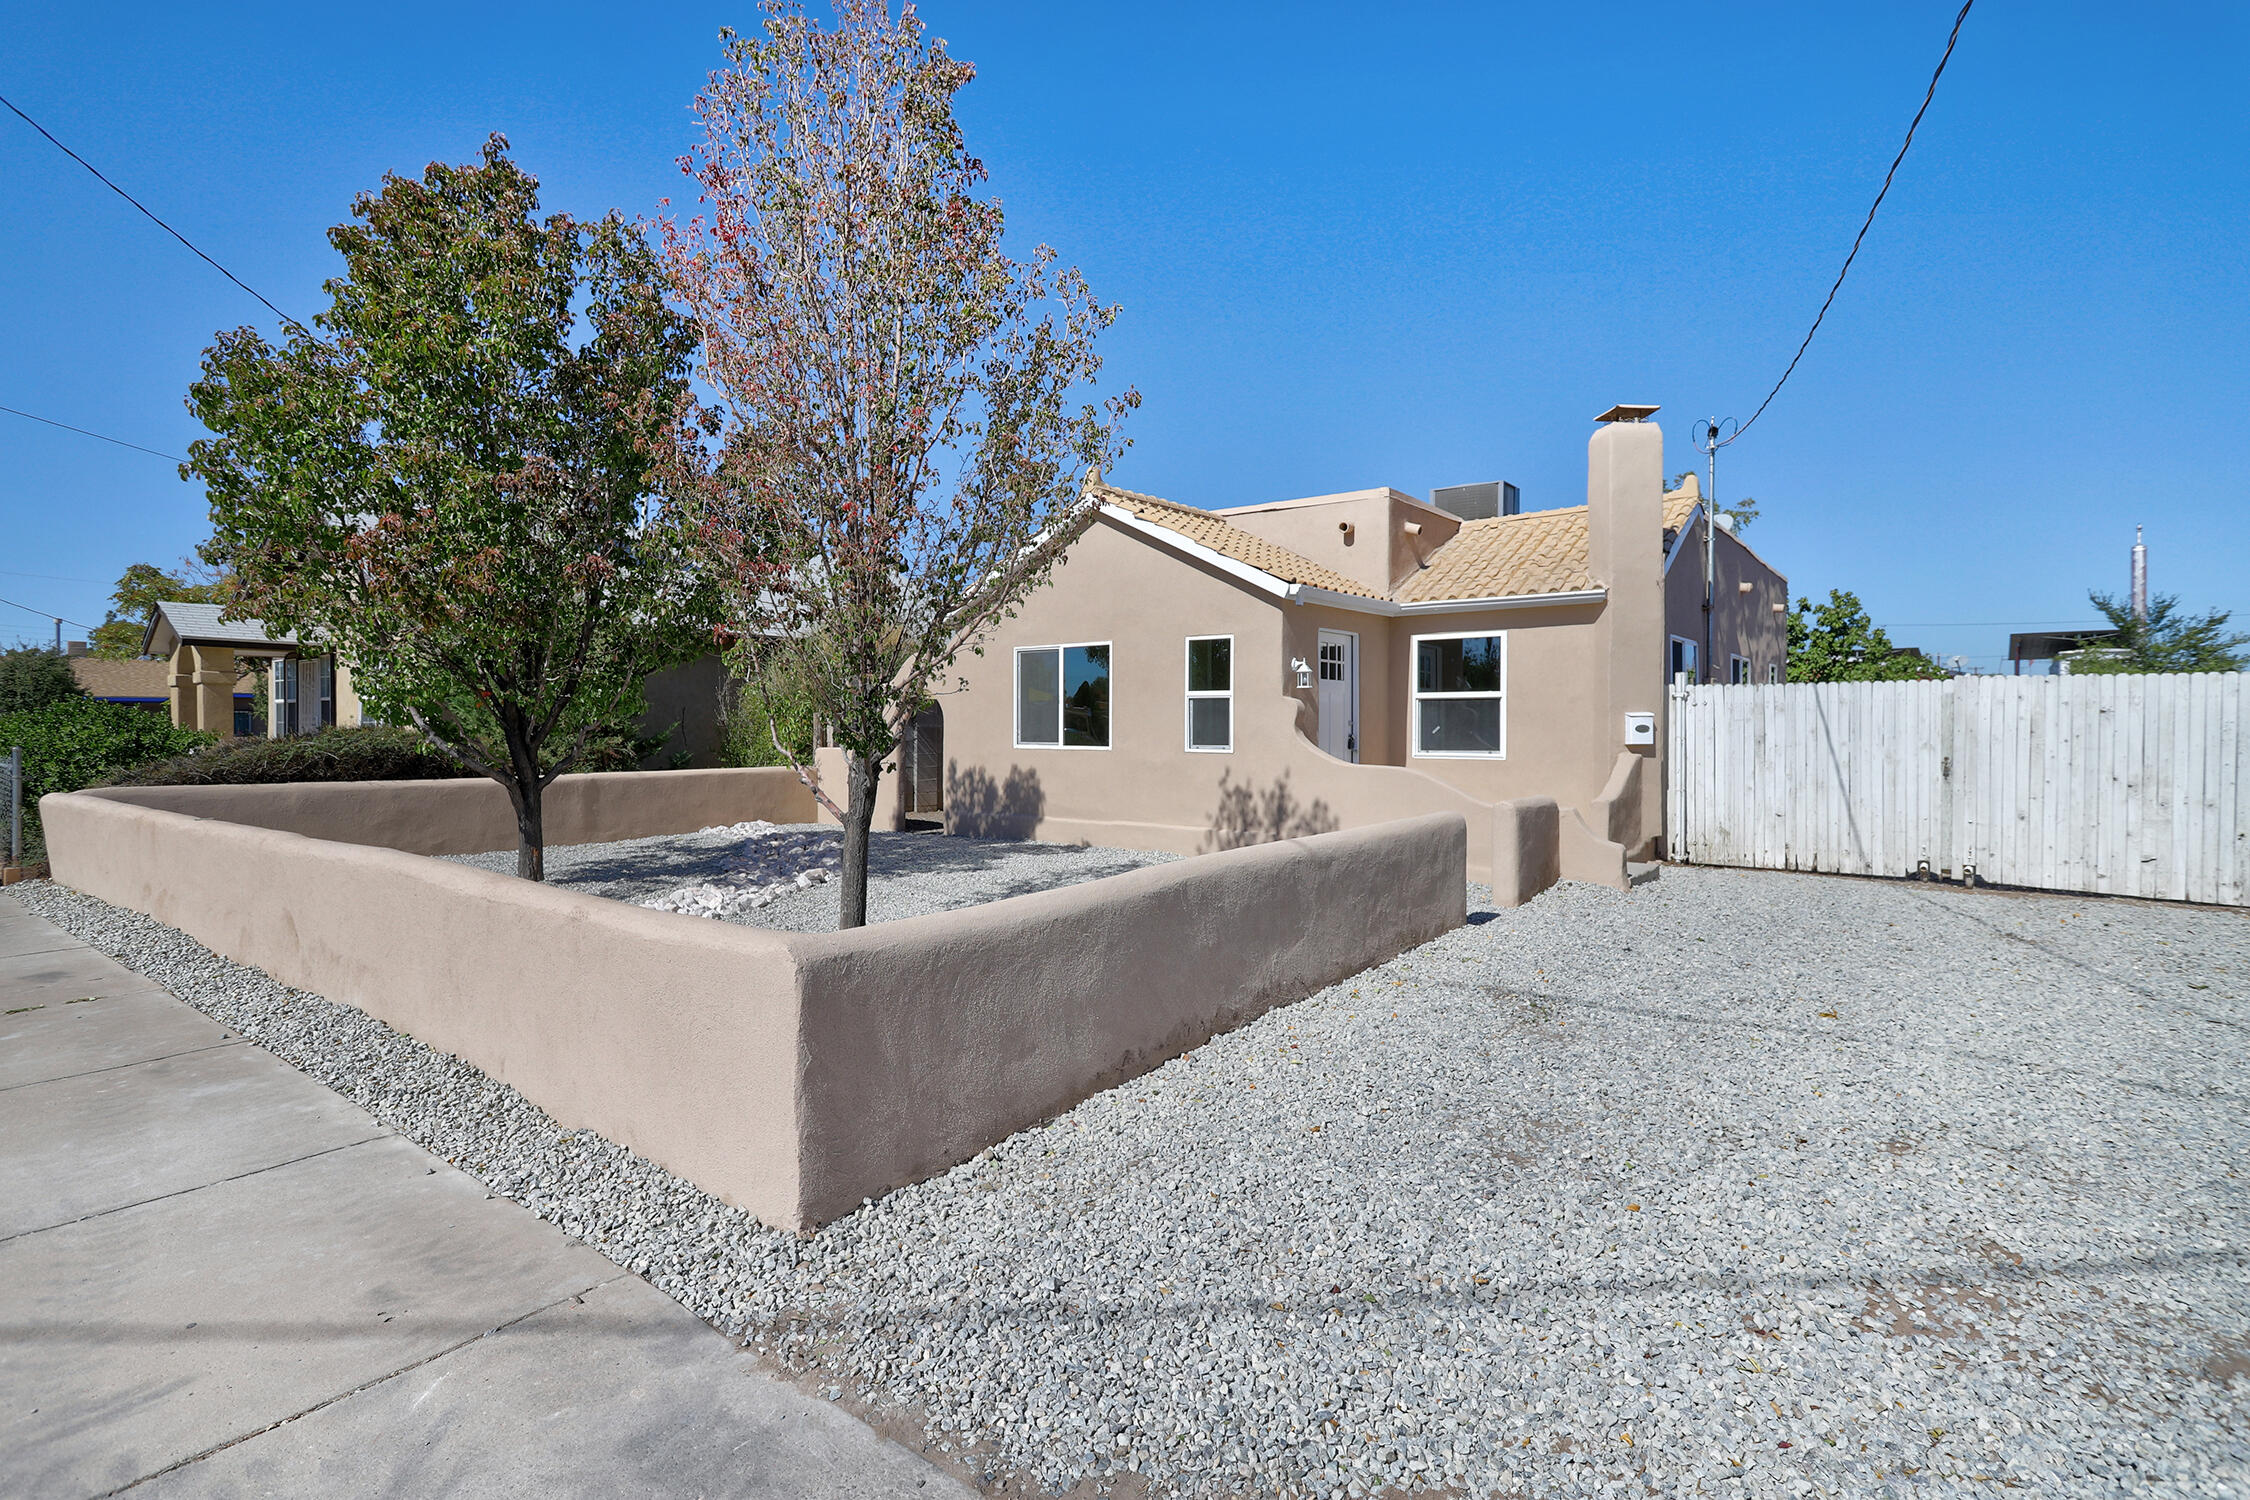 Nice Remodel. New Windows. New Refrigerated Air. New Carpet. New Tile. New Fixtures. New Stucco. Backyard Access. 1000 sq/ft oversized 2 car garage. Stainless steel appliances to be installed before closing.